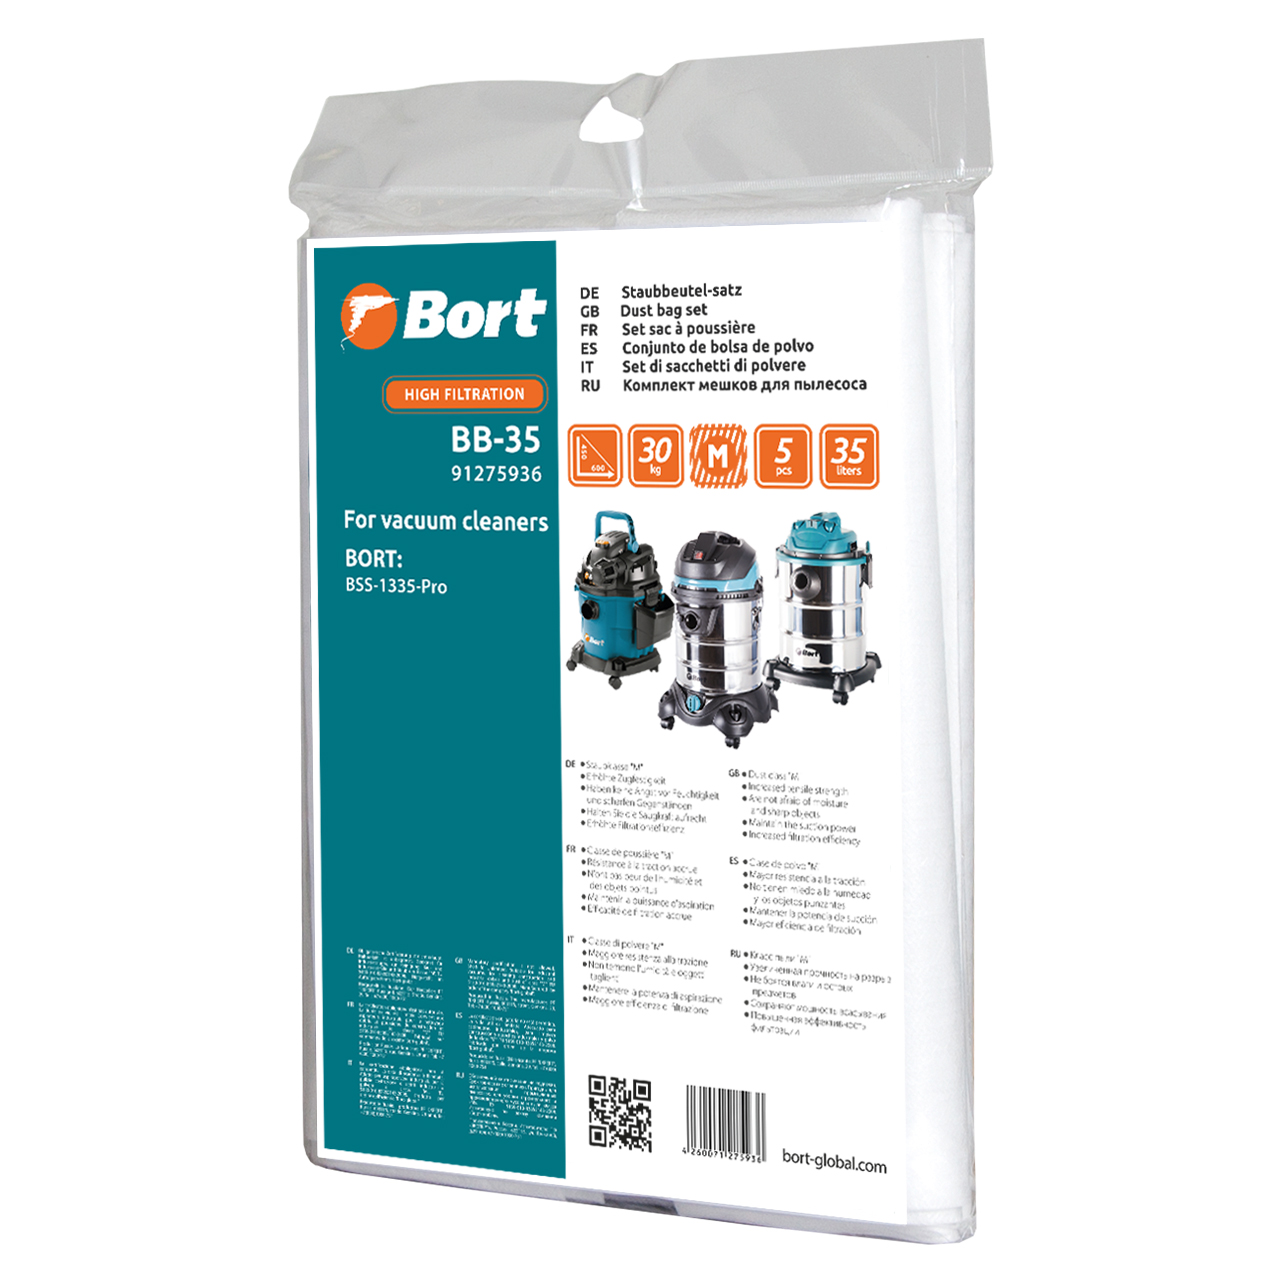 Dust bag set BORT BB-35